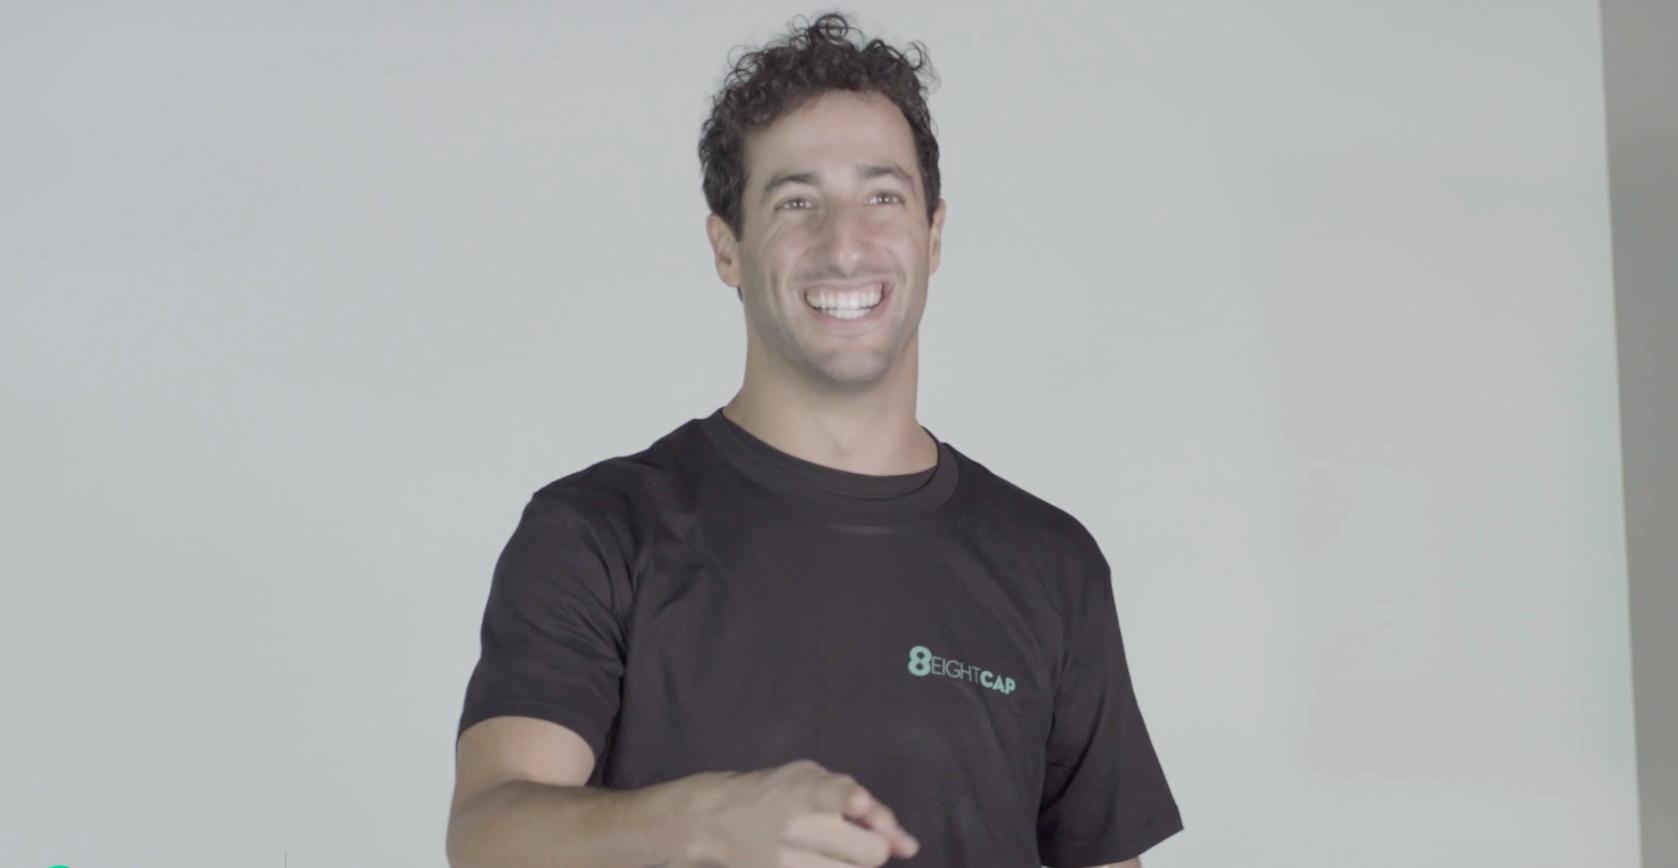 Daniel Ricciardo & Eightcap - Behind the Scenes